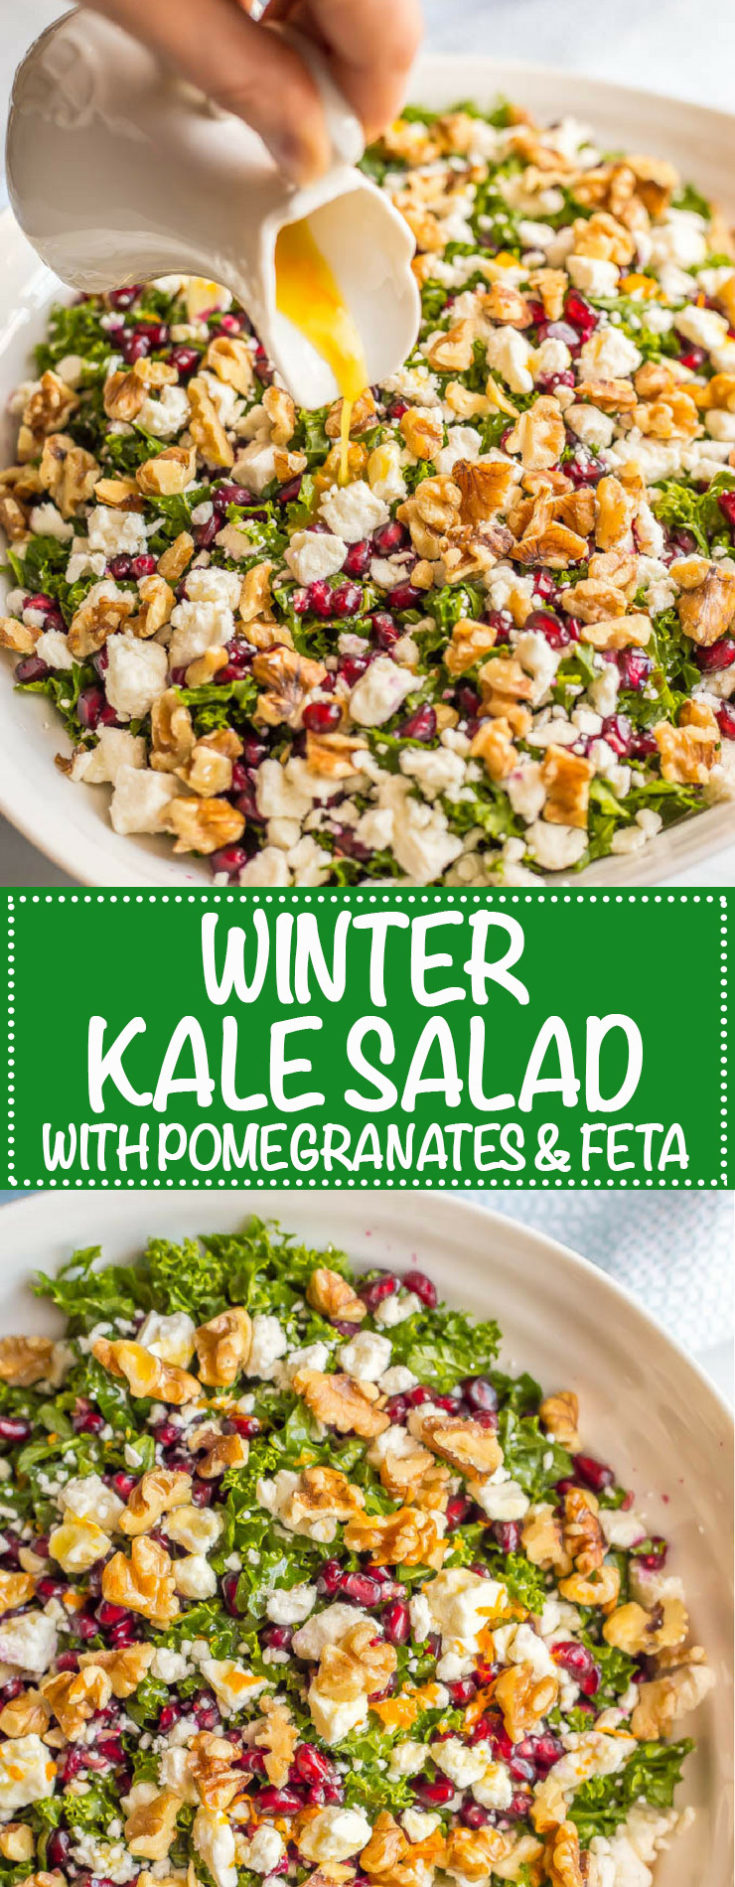 Winter kale salad with pomegranates, feta cheese, walnuts and an easy citrus dressing is perfect for a bright, fresh side dish or light lunch!